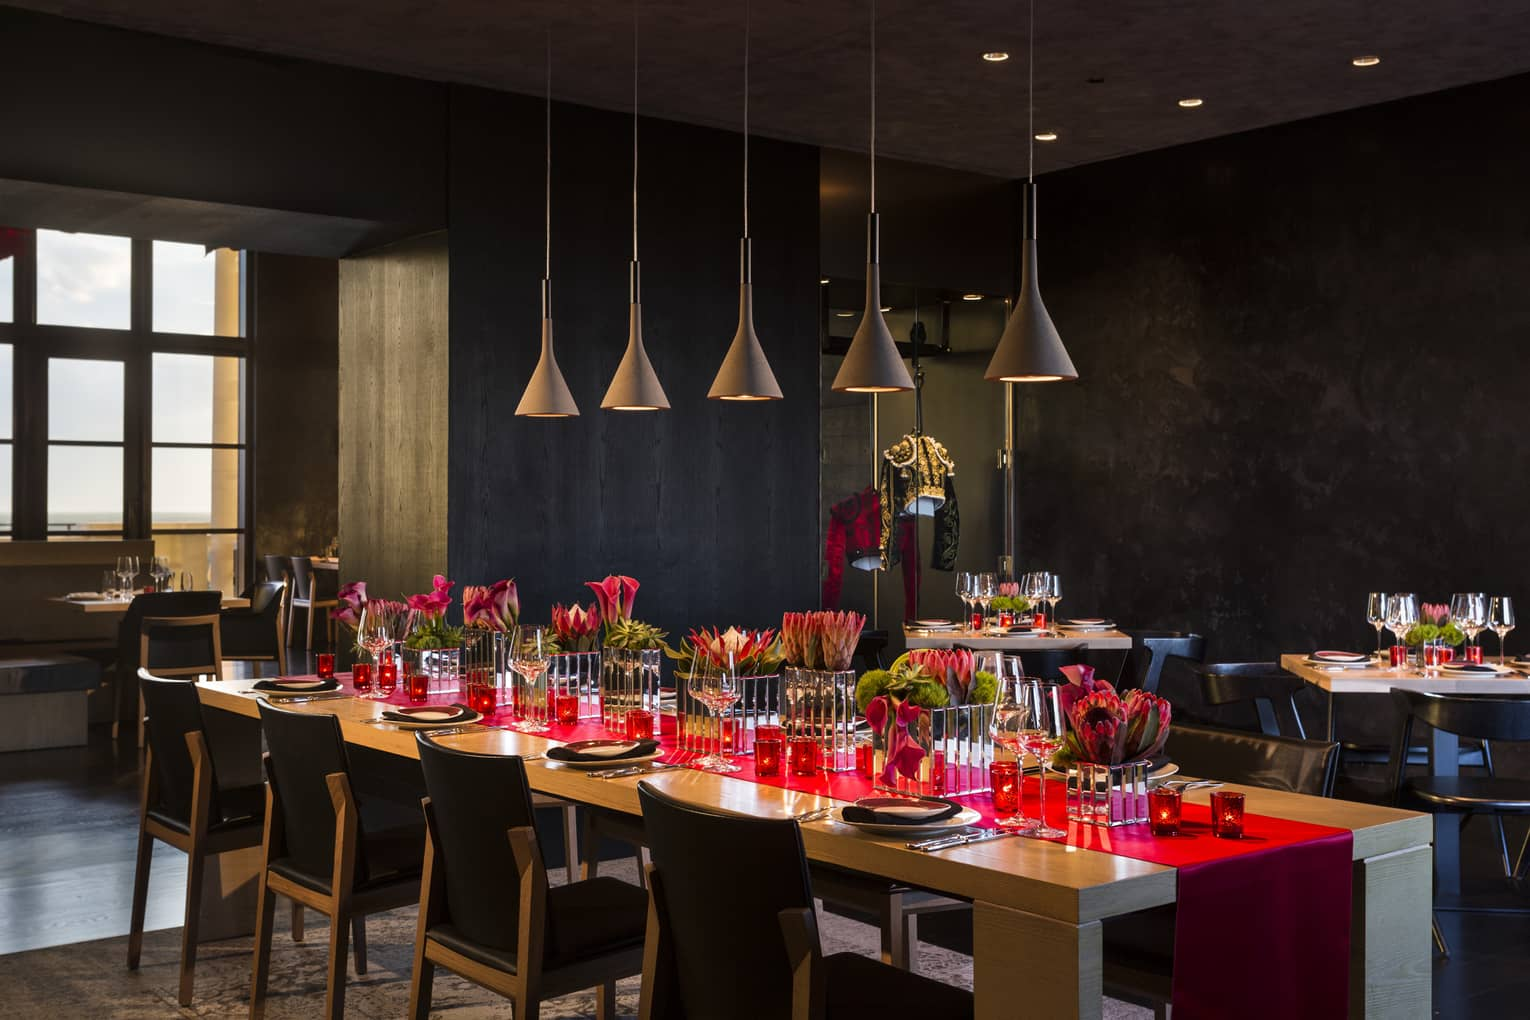 Long table with red runner under row of lamps in San Sebastian private dining room